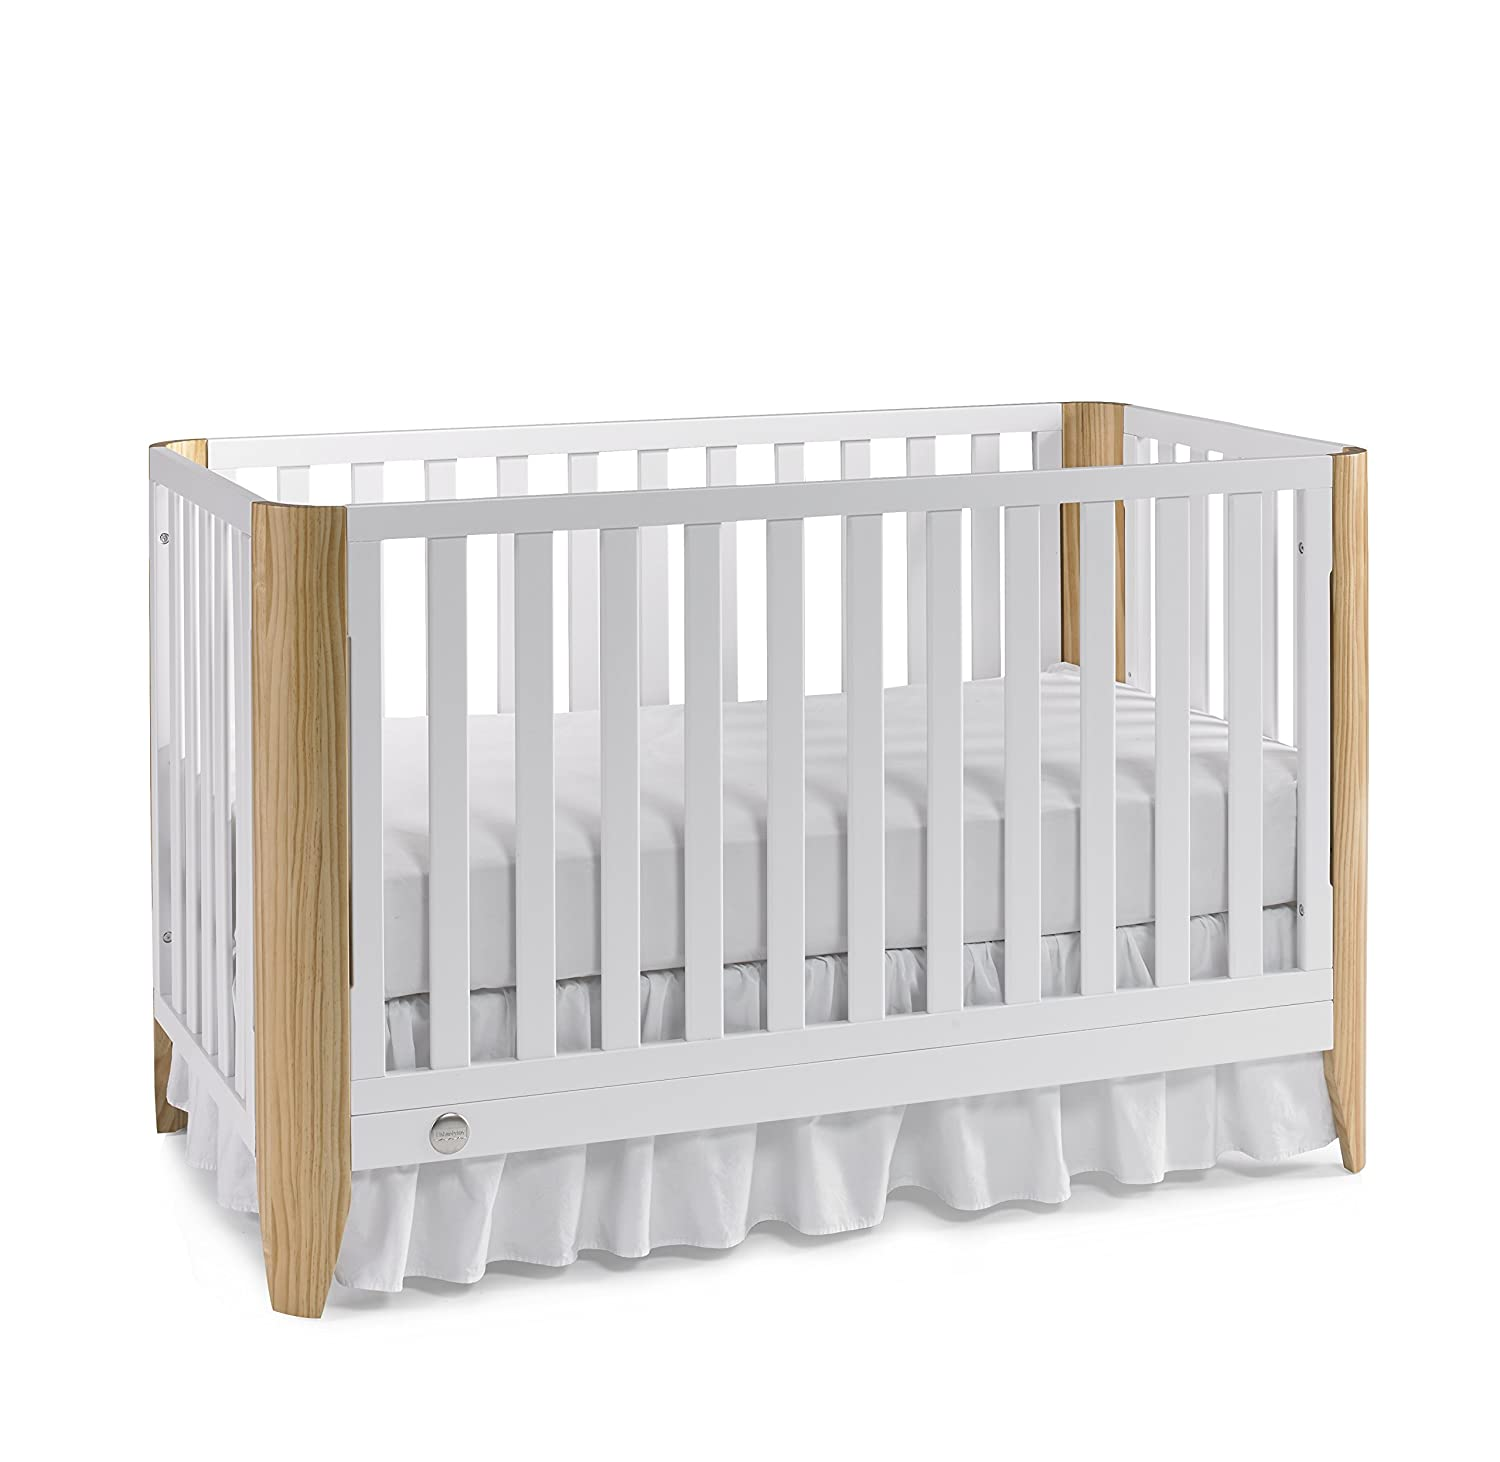 deep in chest this crib dressing the all finish for blue america young decor light pin accent perfect is navy neutral wood natural any and by a room seasons love